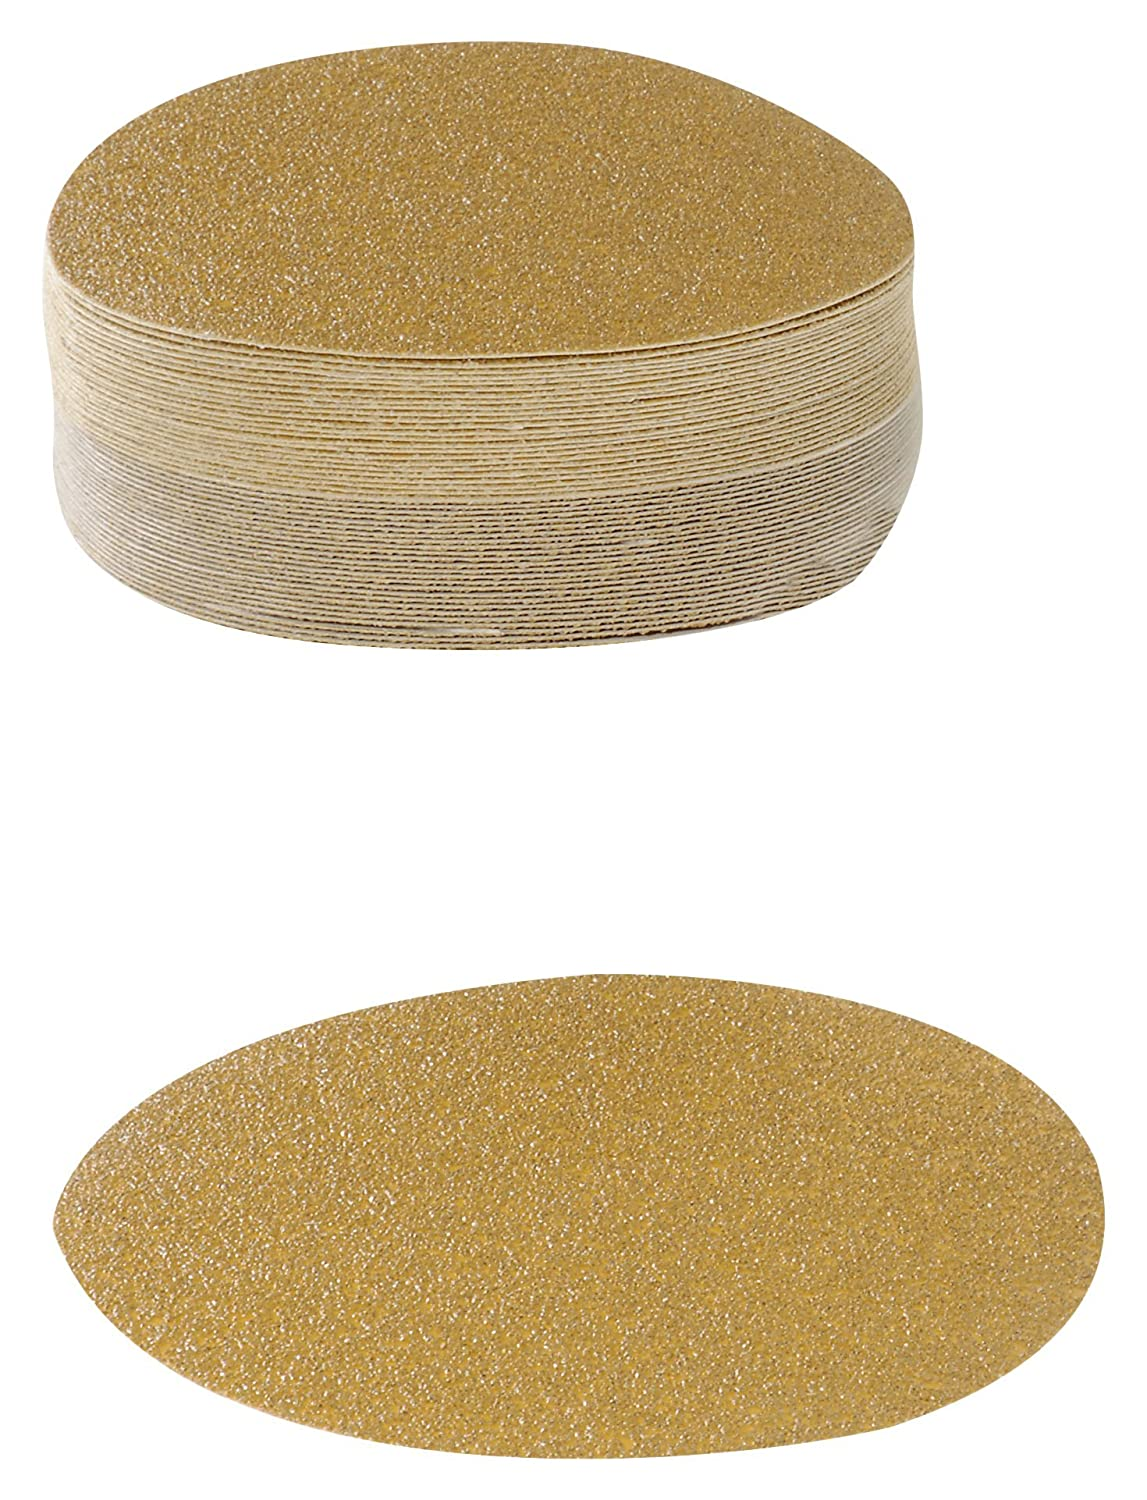 Karebac VDNH36 Hook and Loop Sanding Discs in Heavyweight Paper with 36 Grit Gold Aluminum Oxide (Pack of 50), 6' 6 Karebac Abrasives